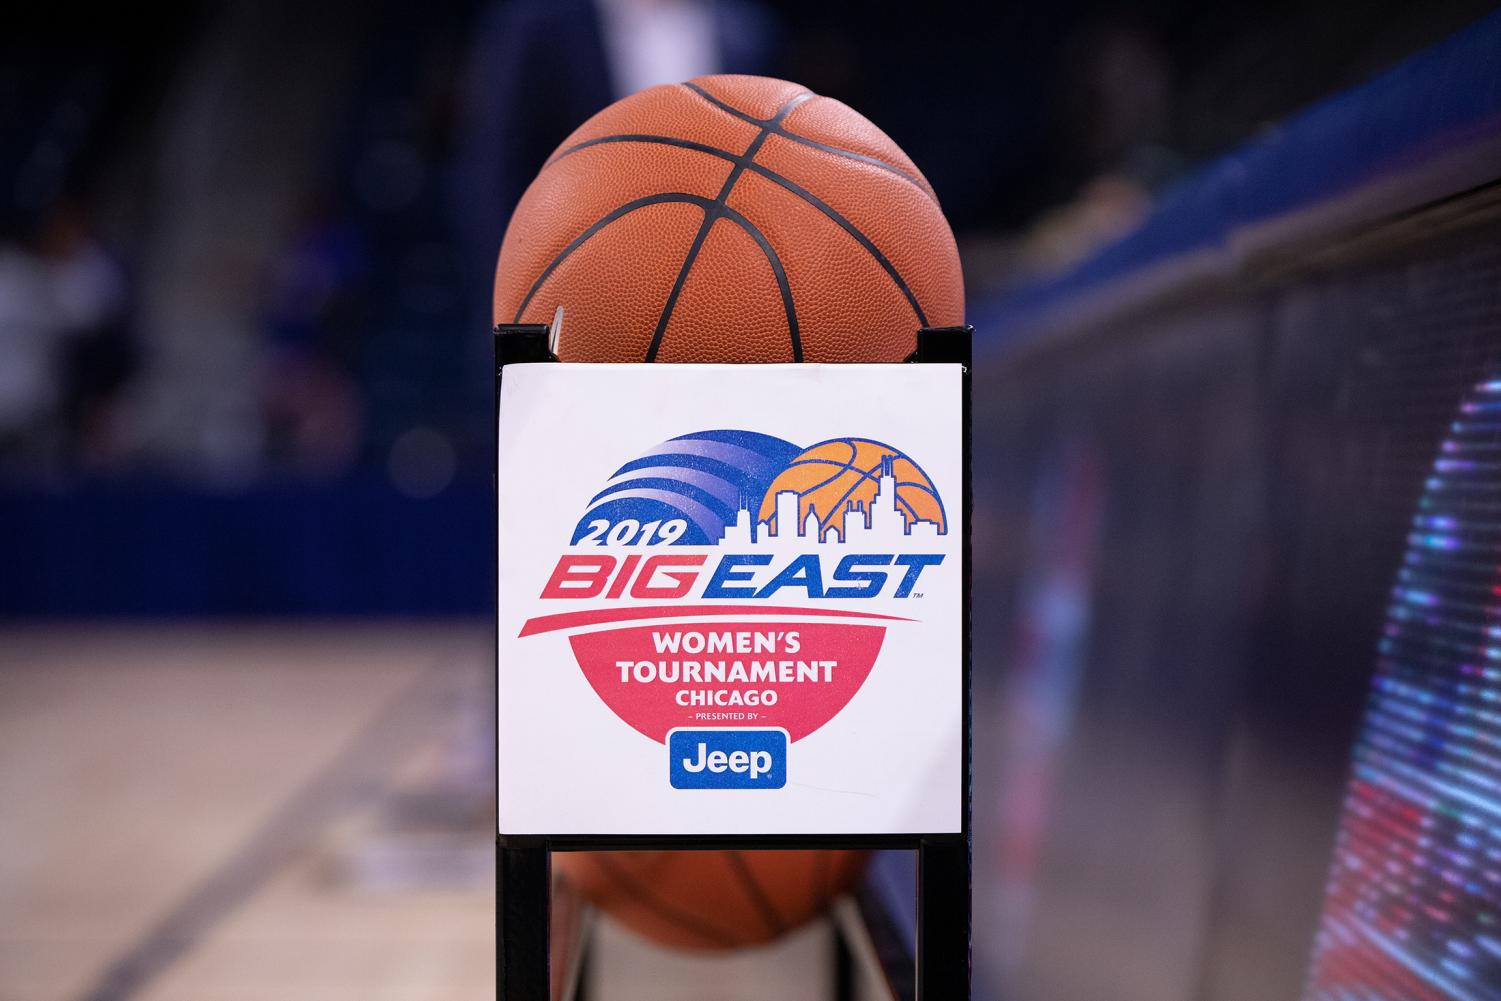 A+rack+of+basketballs+sits+on+the+sideline+for+DePaul%E2%80%99s+game+against+Creighton+Monday+night+at+Wintrust+Arena.+Alexa+Sandler+%7C+The+DePaulia